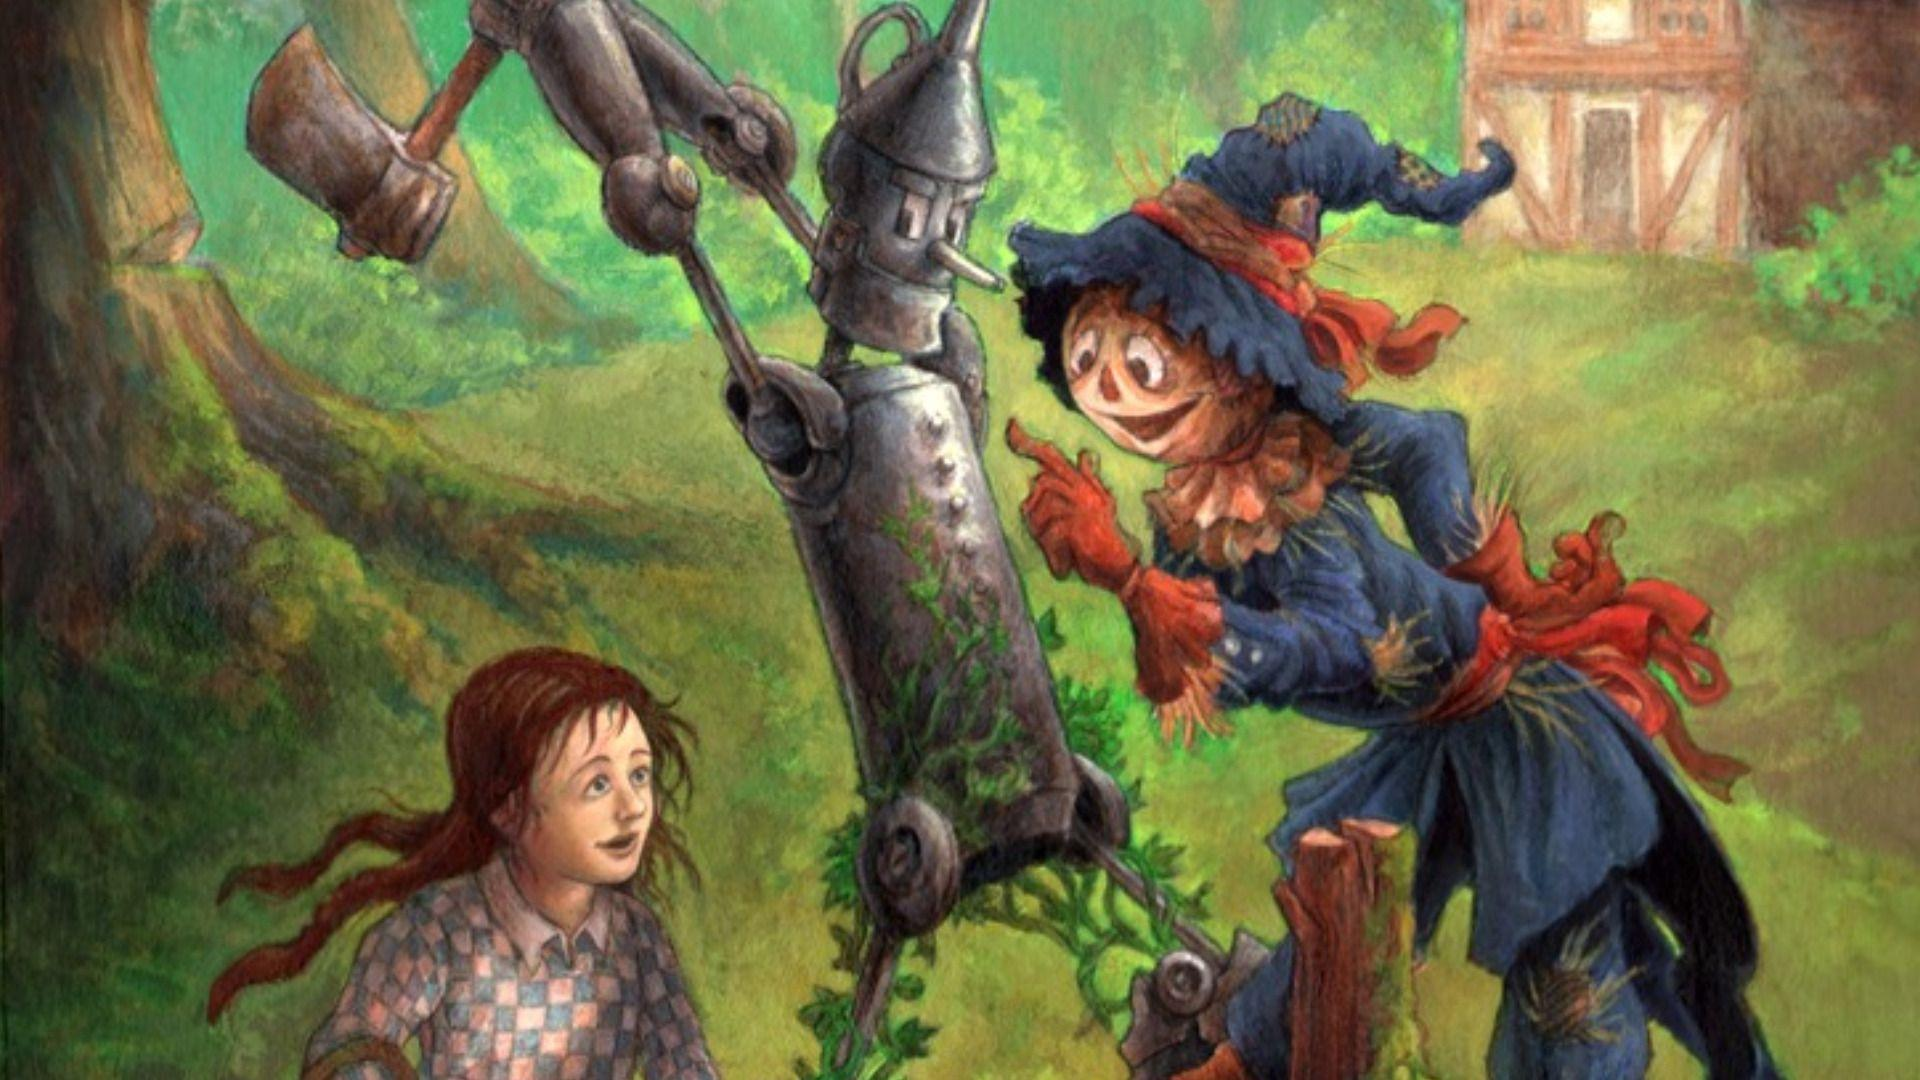 Wizard of oz wallpapers wallpaper cave - The wizard of oz hd ...